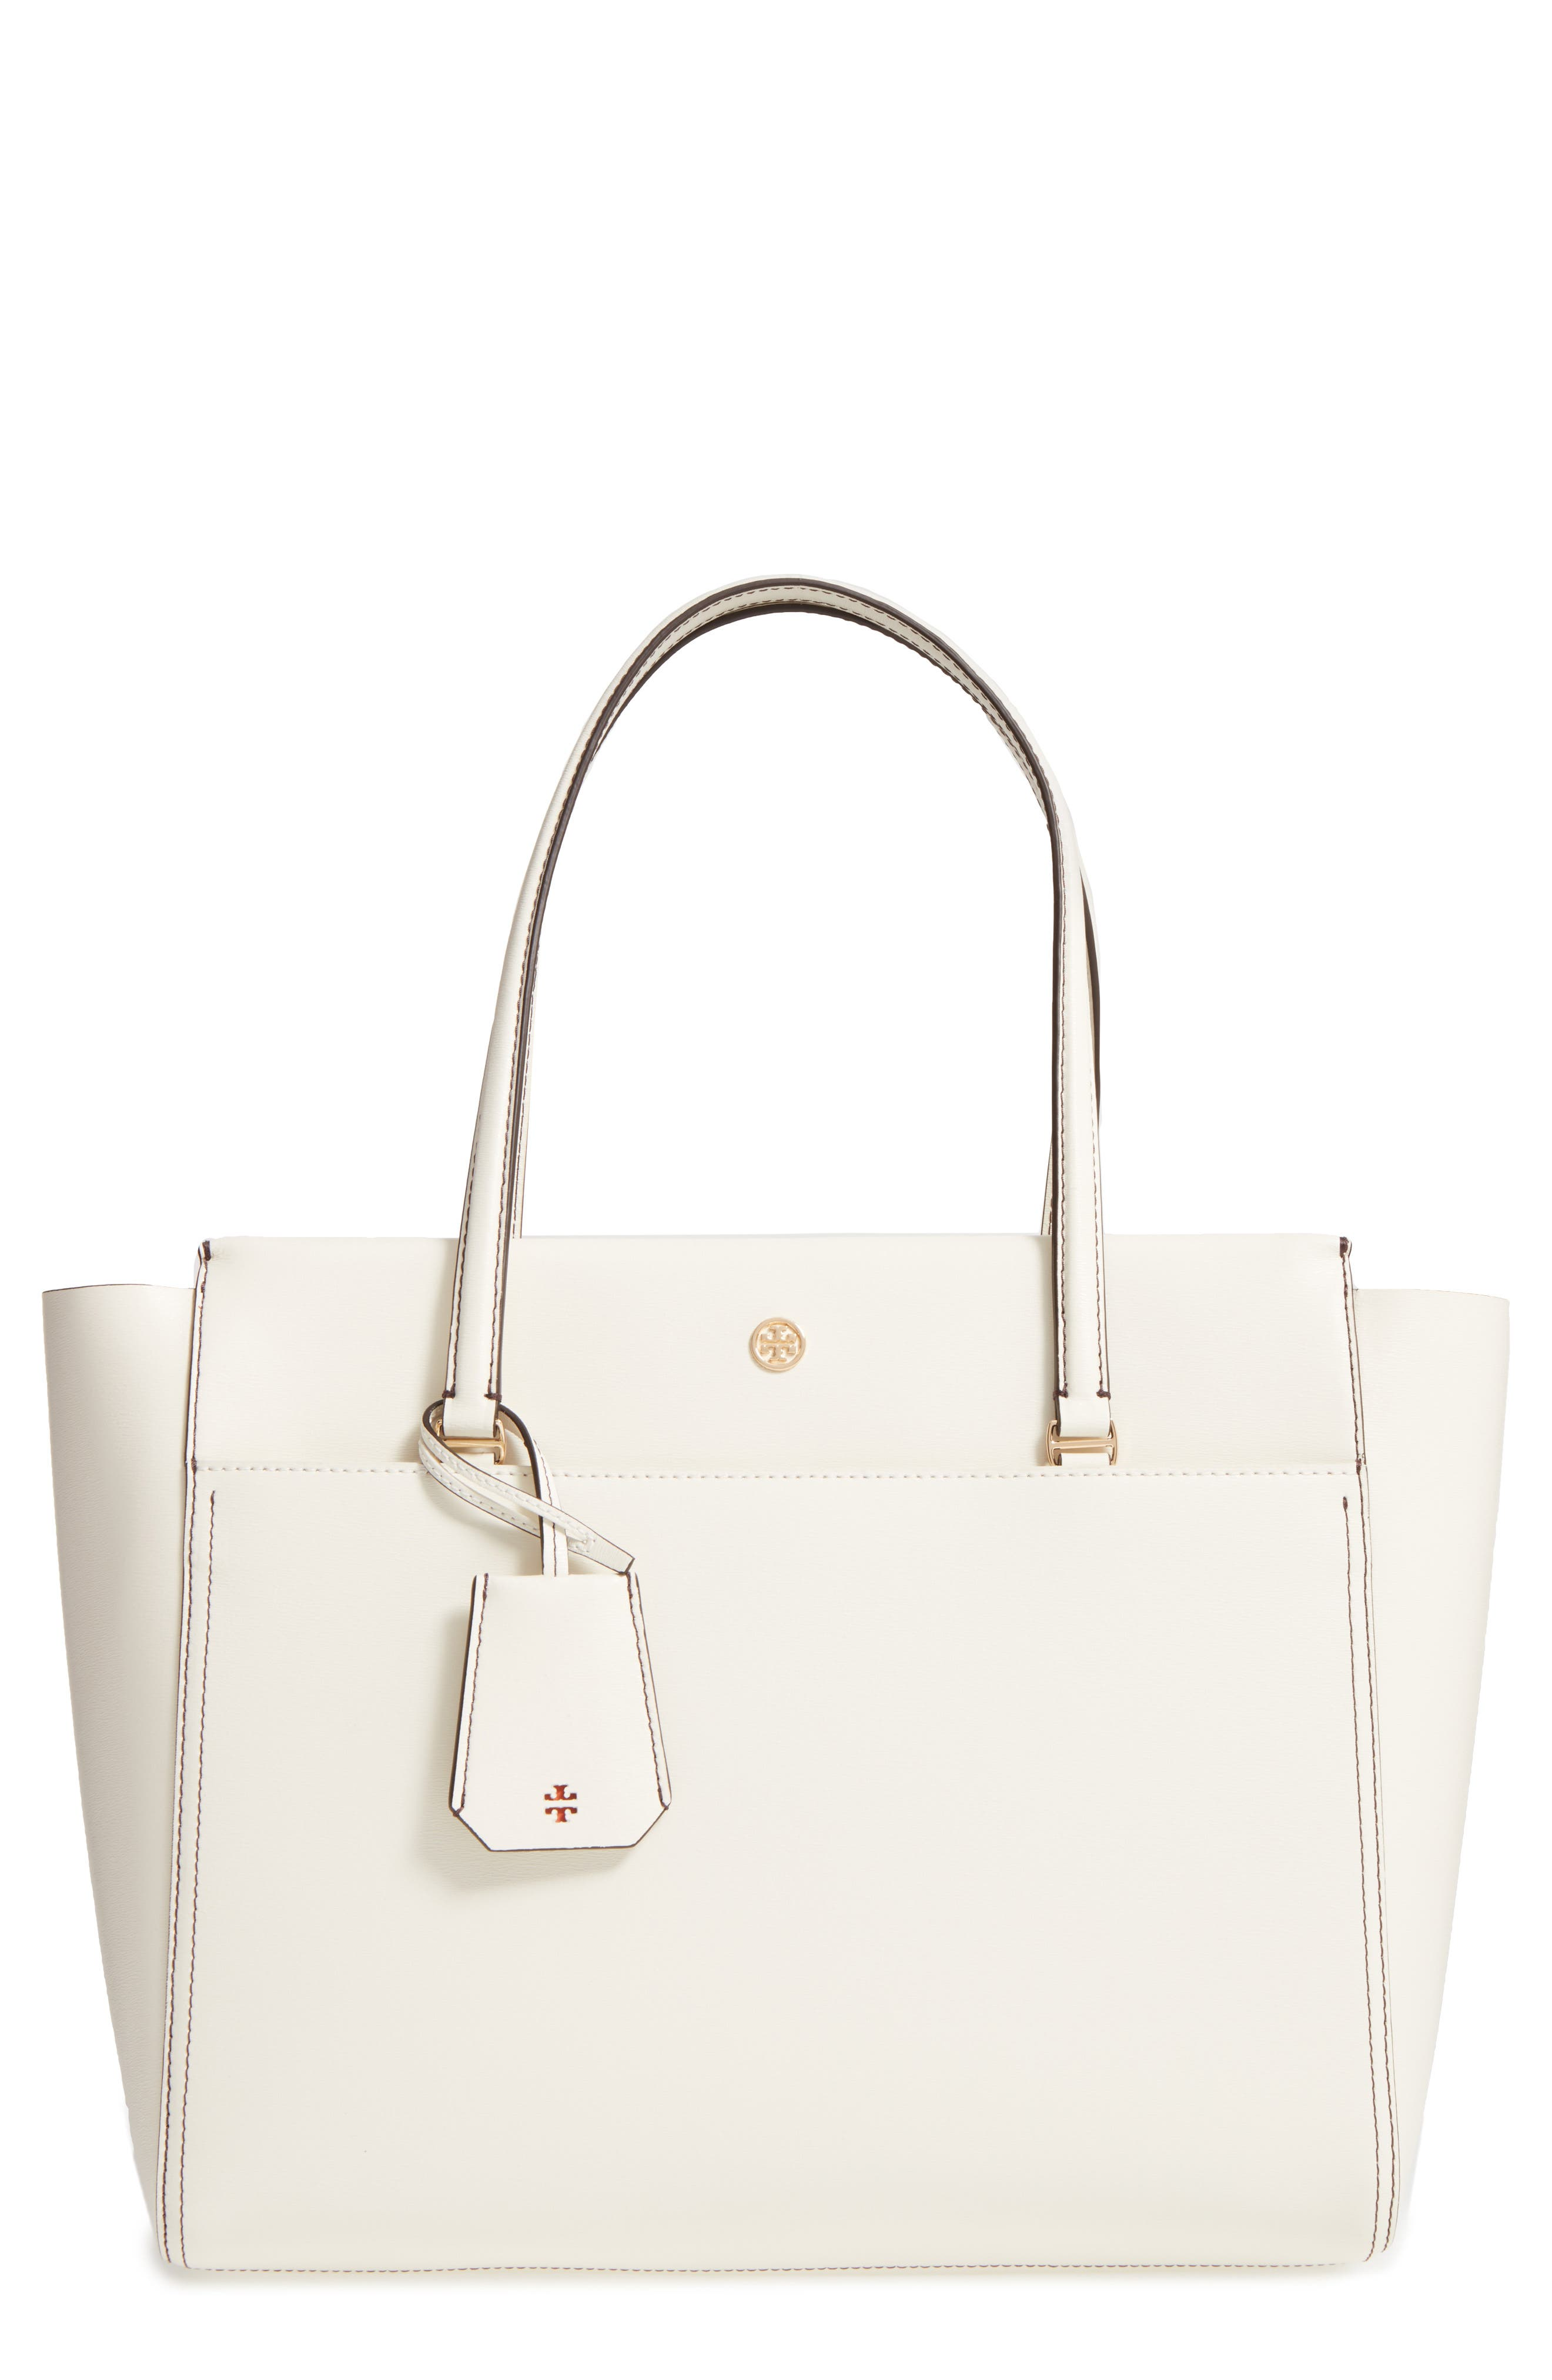 Parker Leather Tote,                             Main thumbnail 1, color,                             New Ivory/ Mango